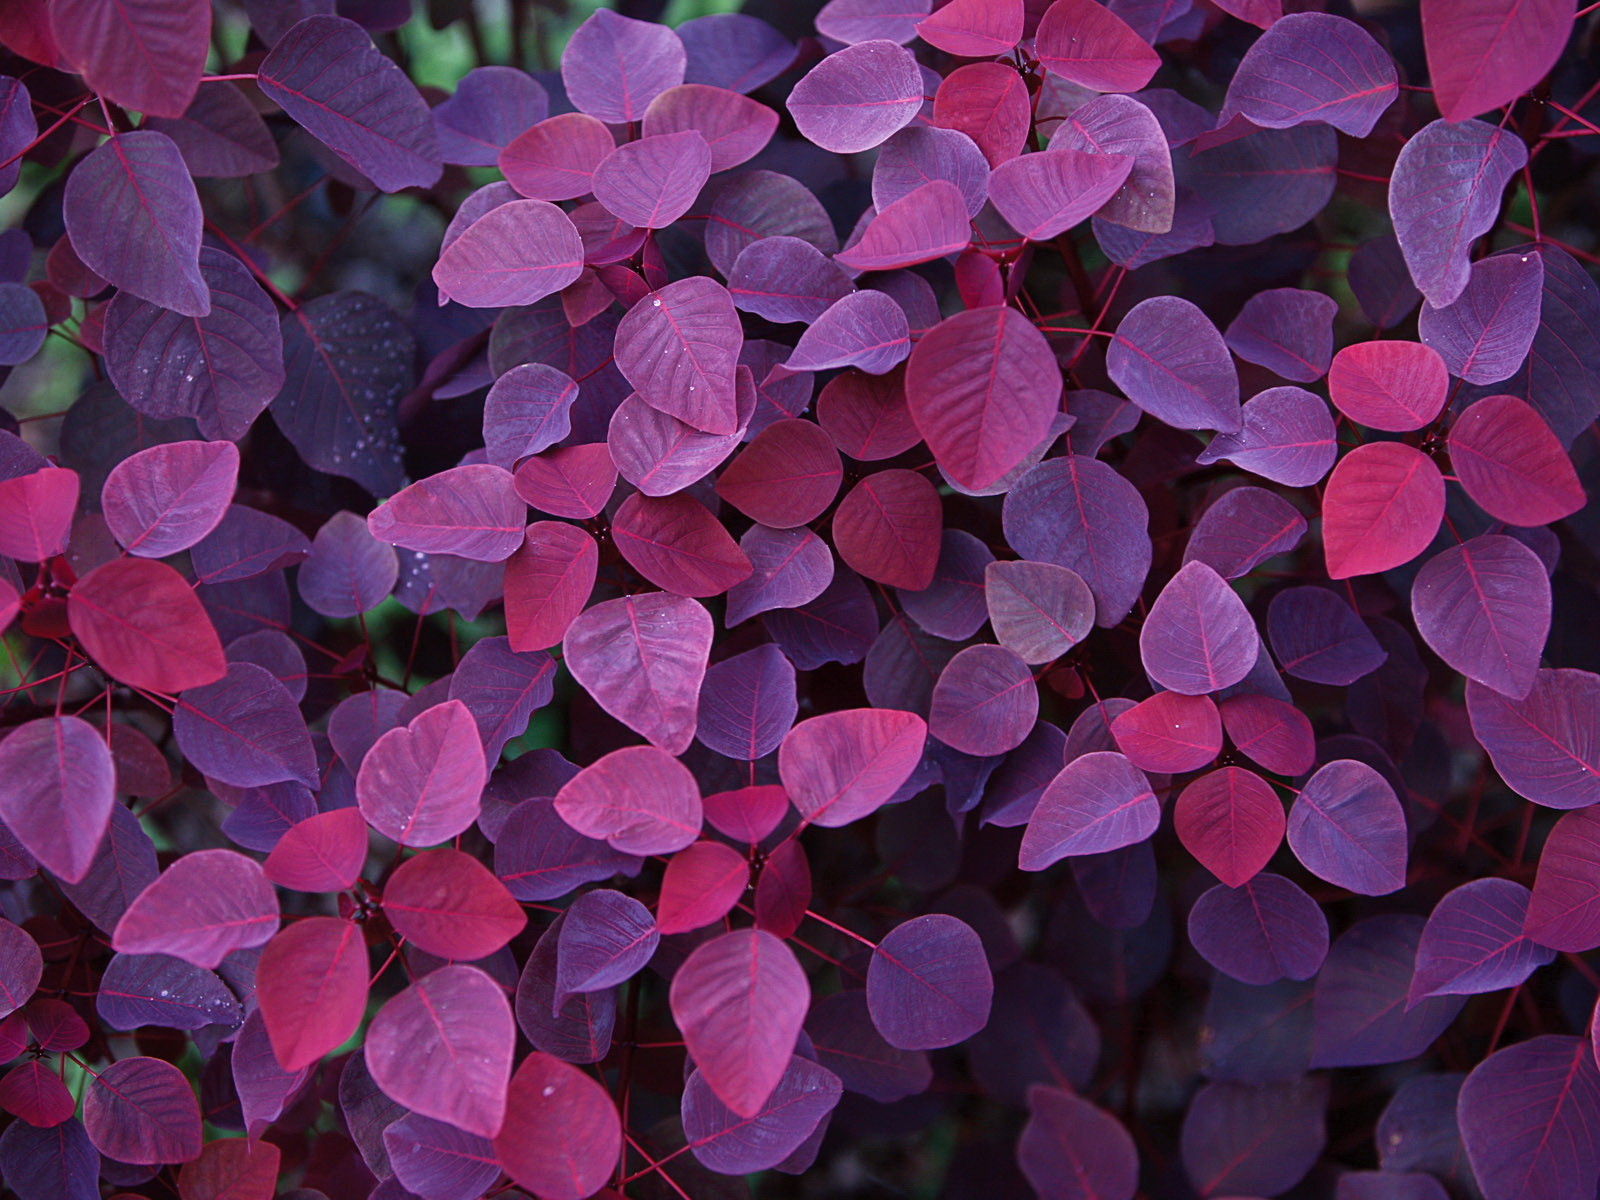 15097 download wallpaper Plants, Background, Animals, Leaves, Violet screensavers and pictures for free